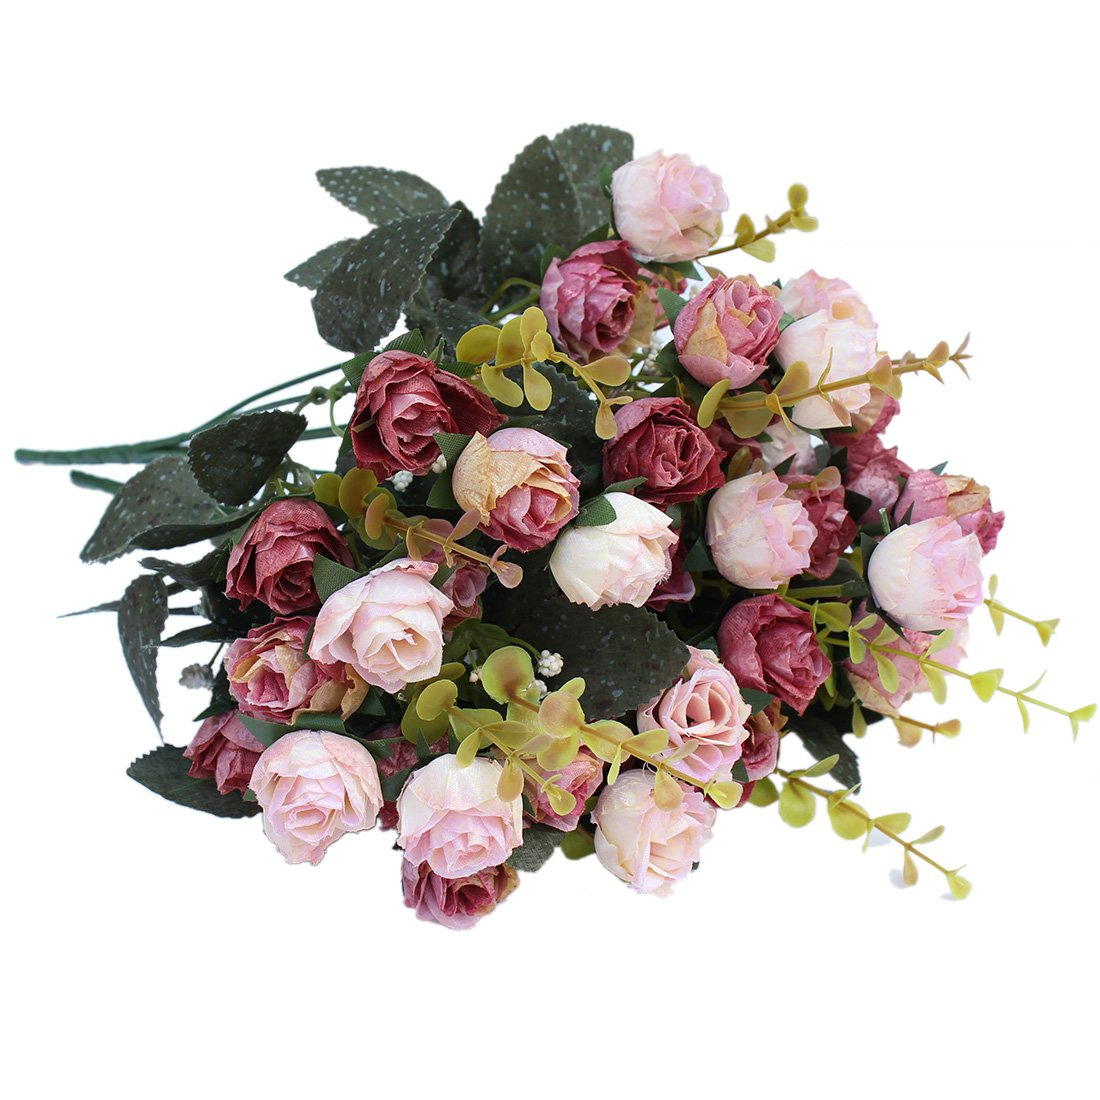 Amazon luyue 7 branch 21 heads artificial silk fake flowers amazon luyue 7 branch 21 heads artificial silk fake flowers leaf rose wedding floral decor bouquetpack of 2 pink coffee home kitchen izmirmasajfo